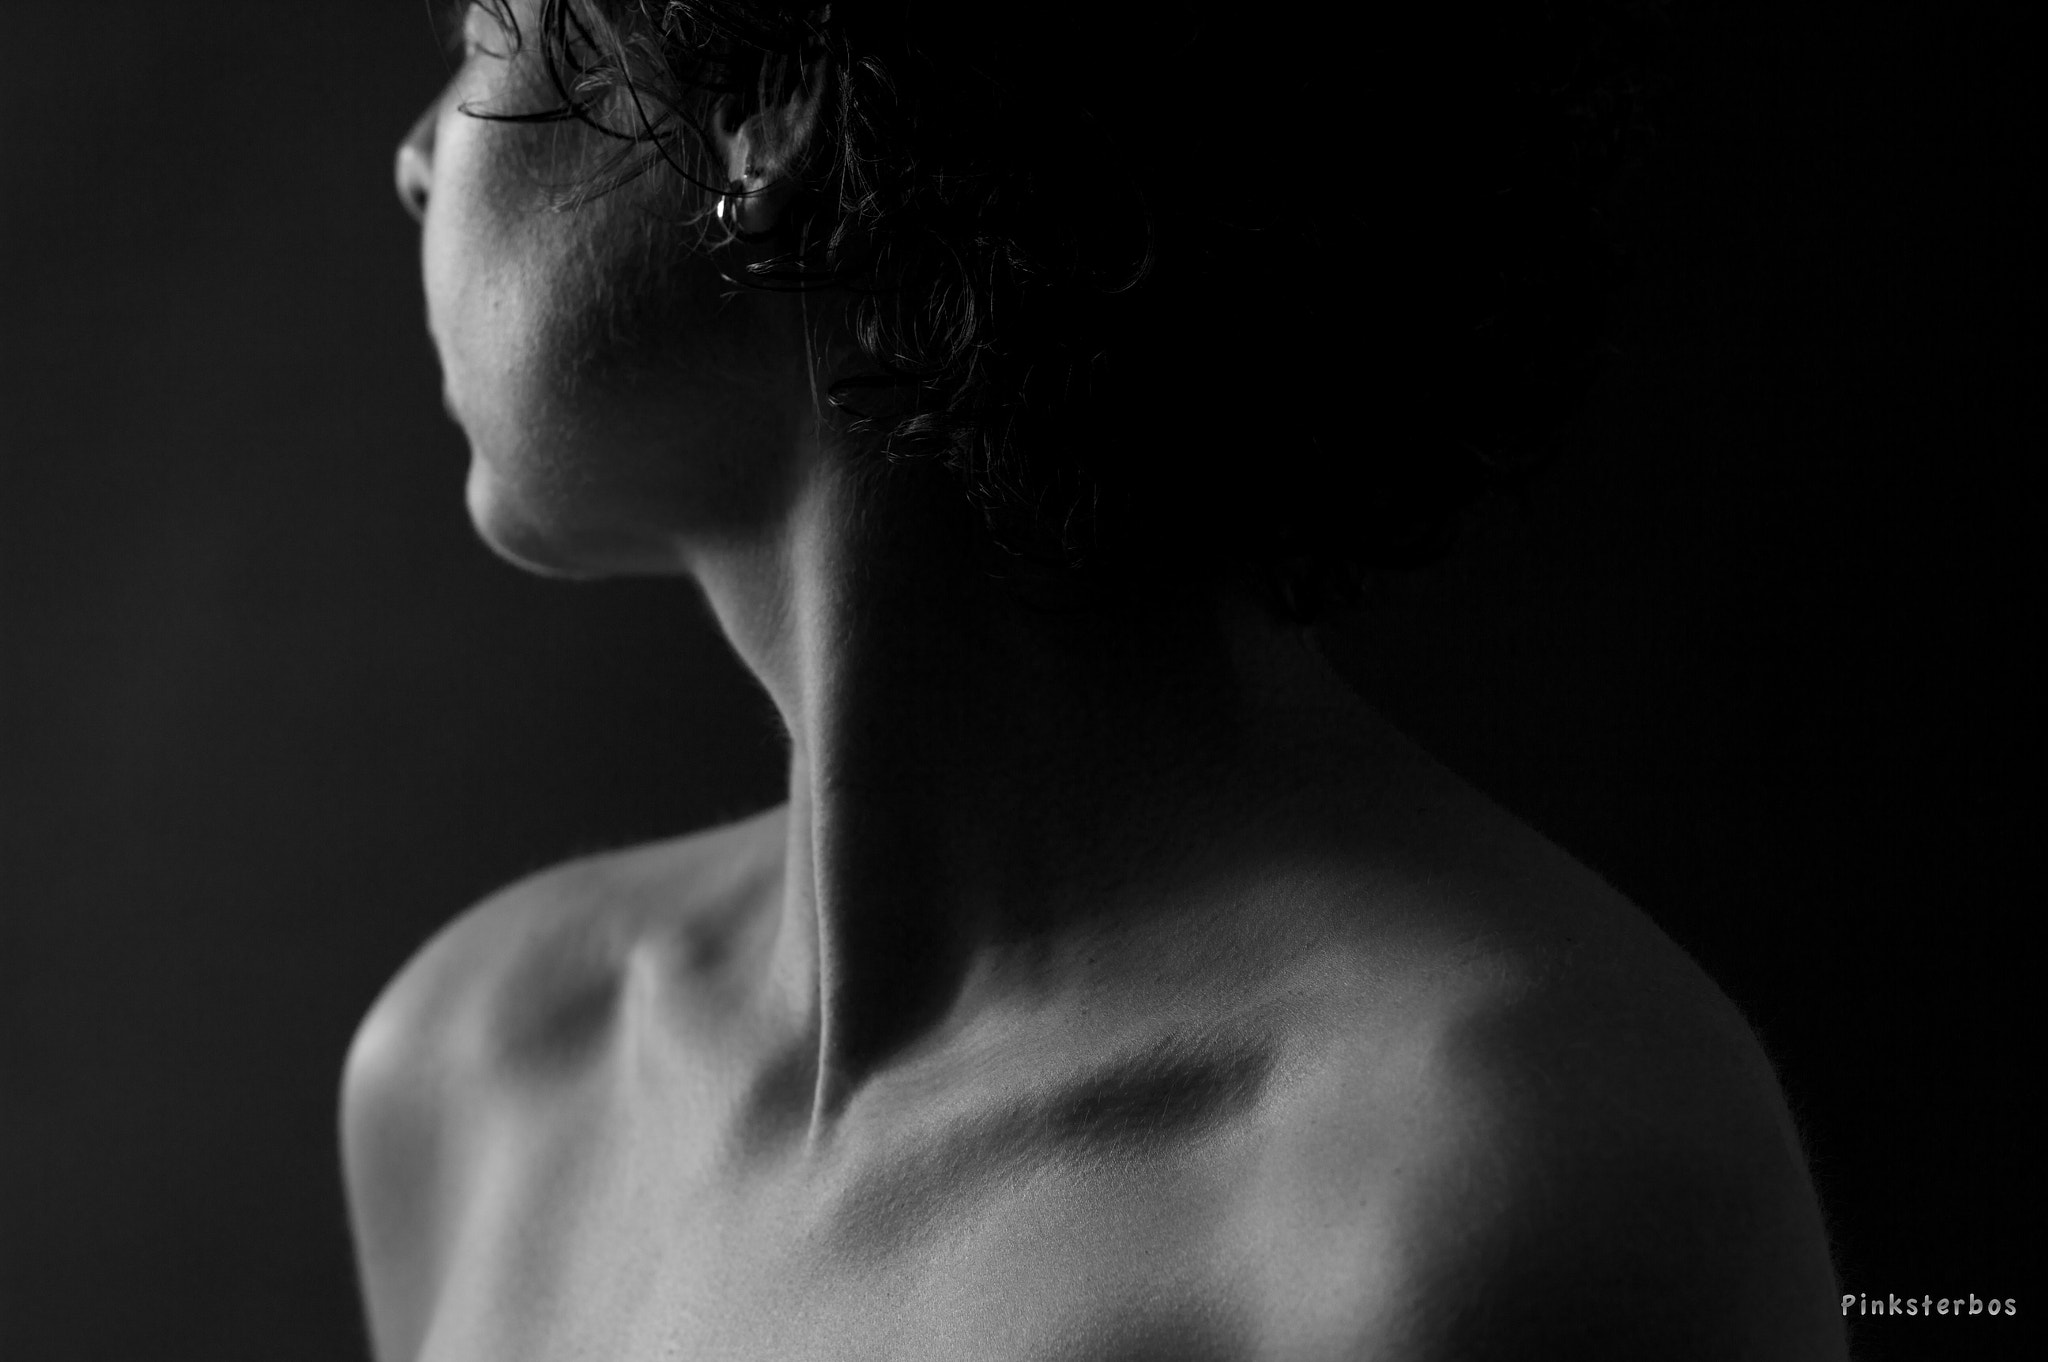 Photograph Collarbone by Familie Pinksterbos on 500px